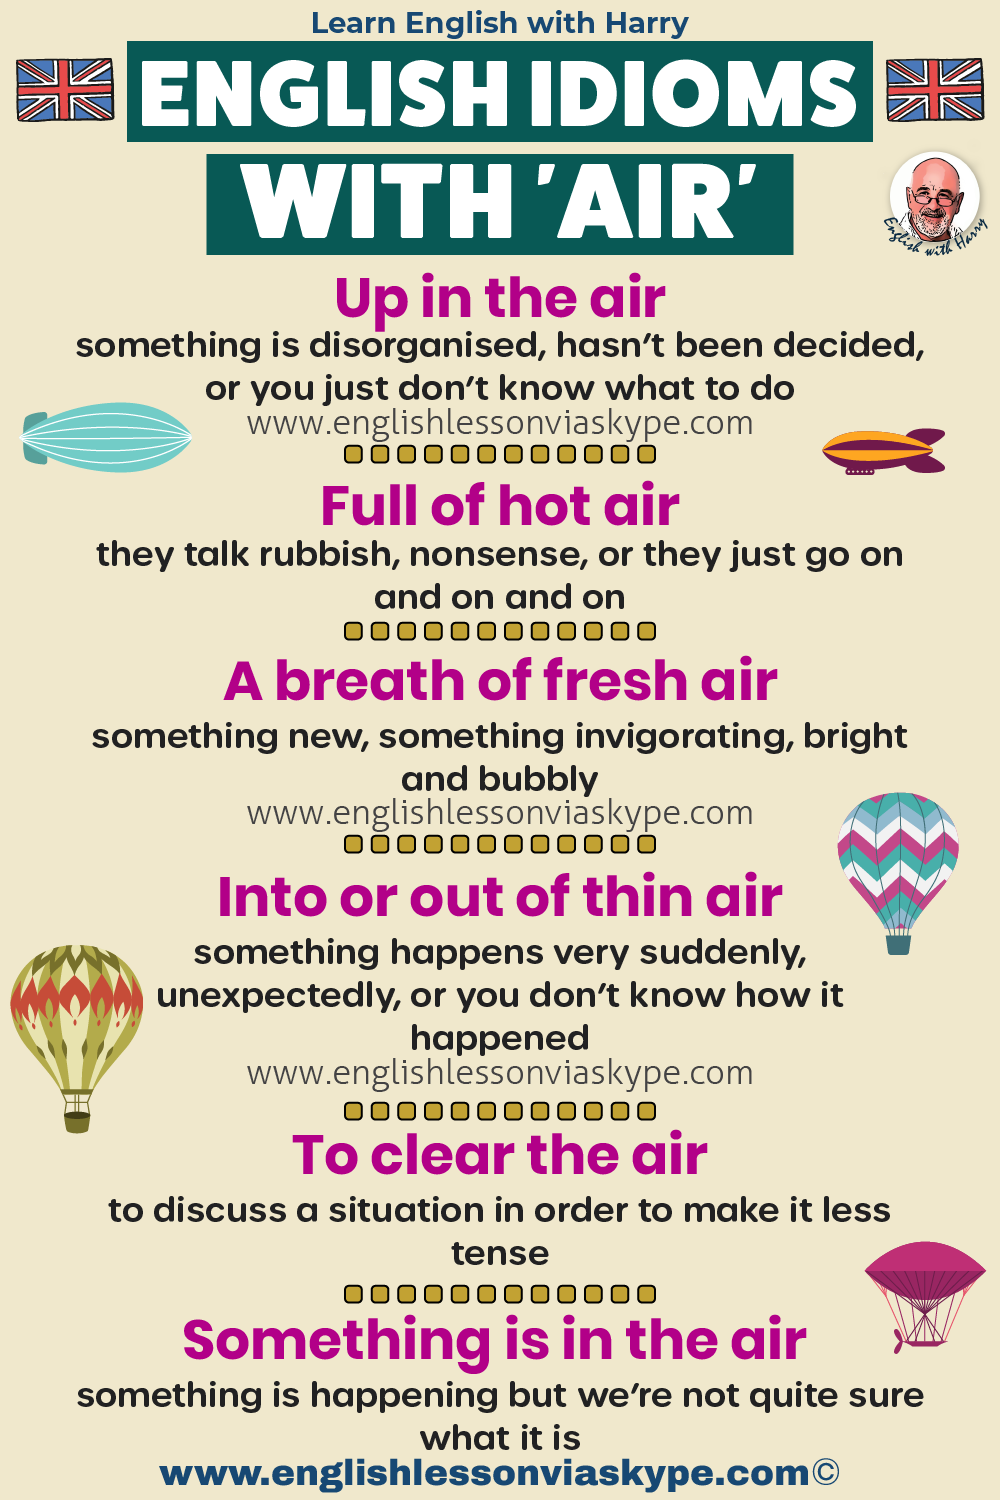 English air idioms and phrases. Idioms to do with air. Advanced English learning. Online Zoom English lessons at www.englishlessonviaskype.com